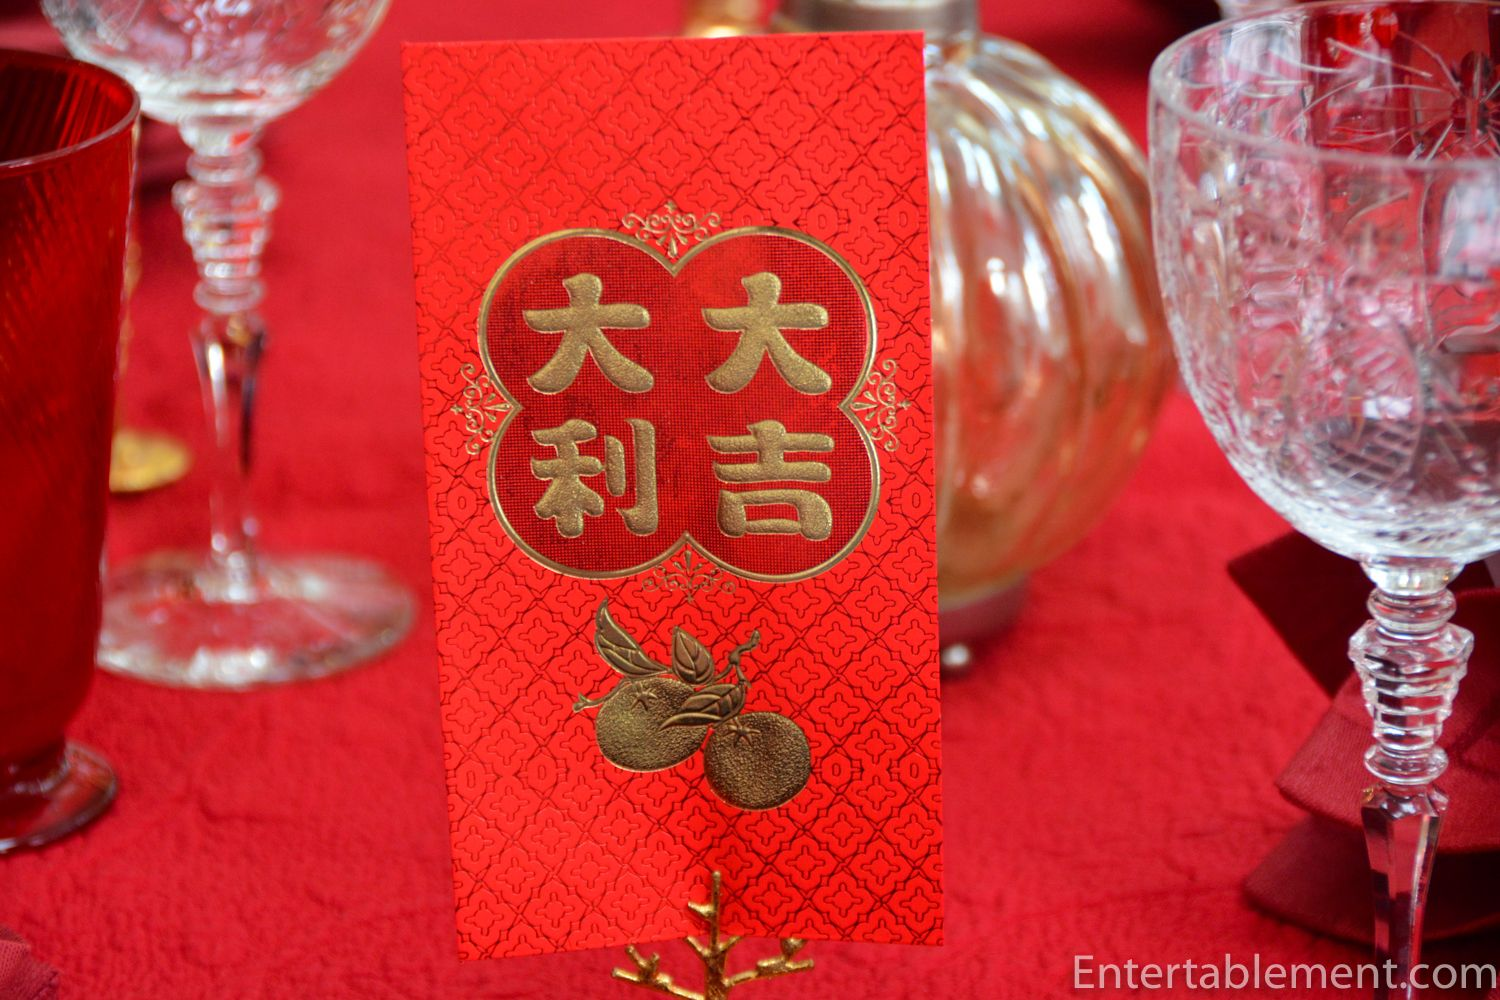 Celebrating Birthdays With A Chinese New Year Theme Entertablement In 2020 Chinese New Year Crafts For Kids Chinese New Year Crafts Chinese New Year Dragon